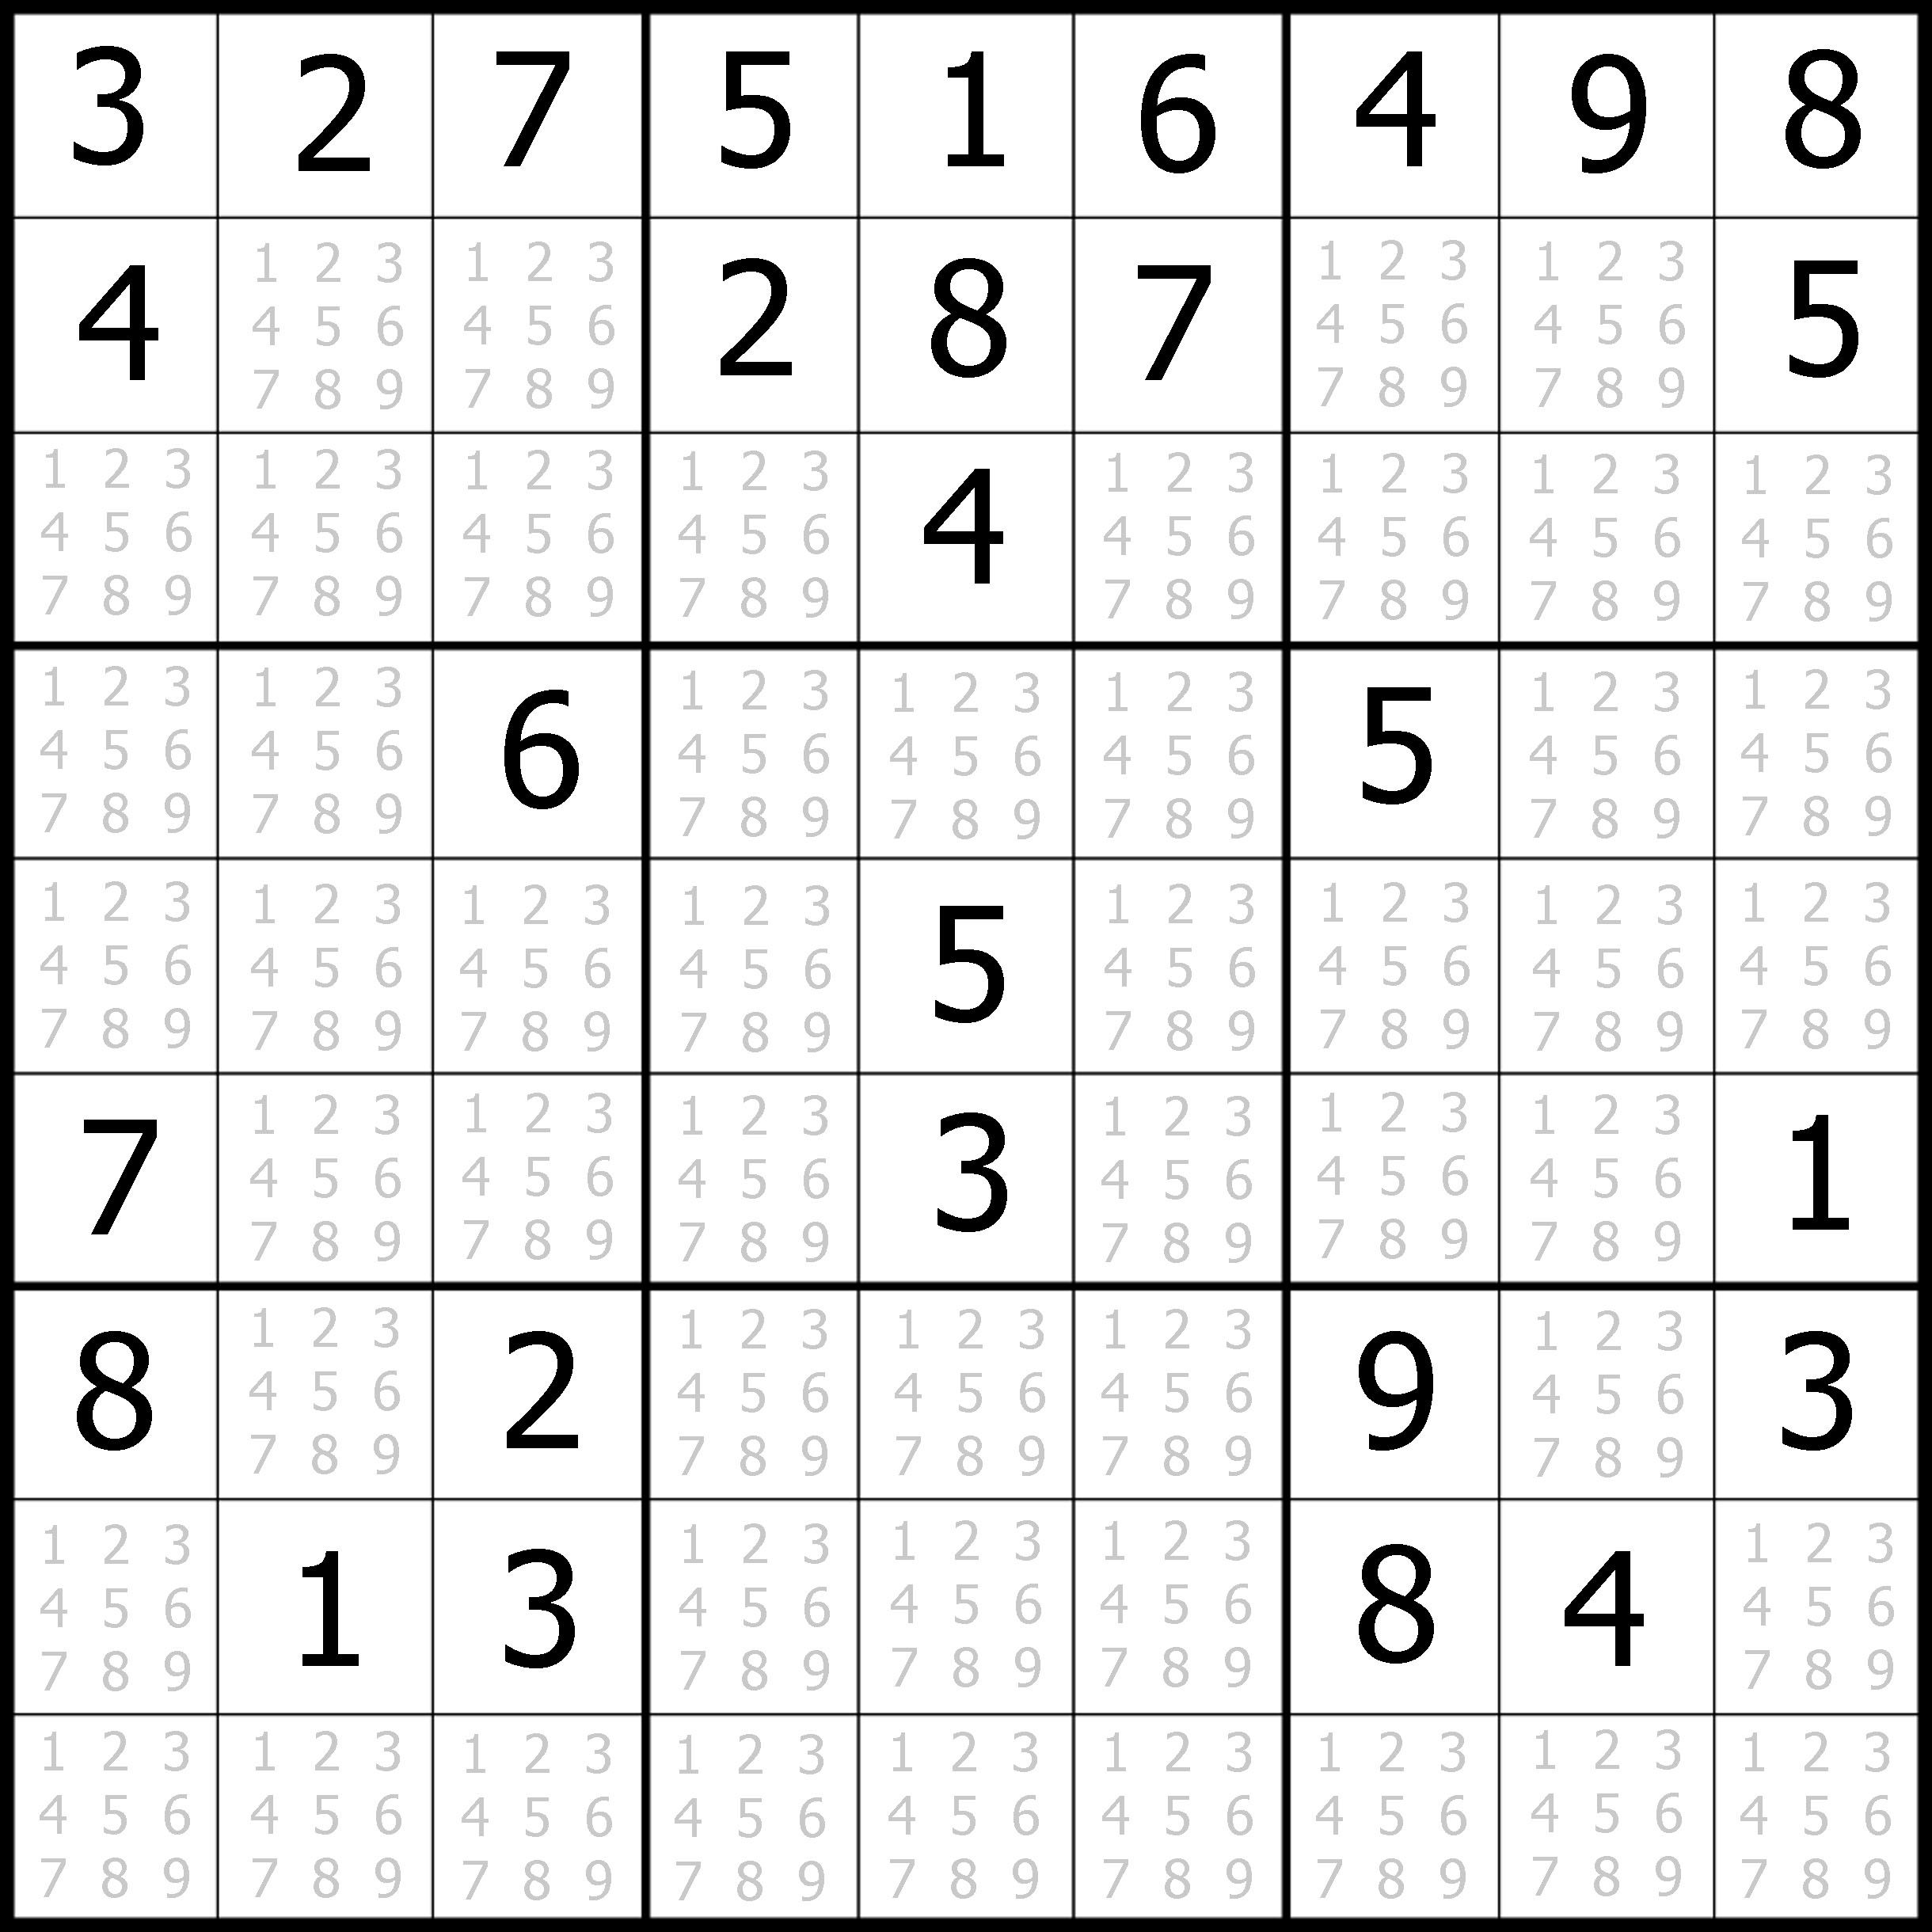 graphic about Printable Sudoku Grid identify Sudoku Printable Absolutely free, Medium, Printable Sudoku Puzzle #1